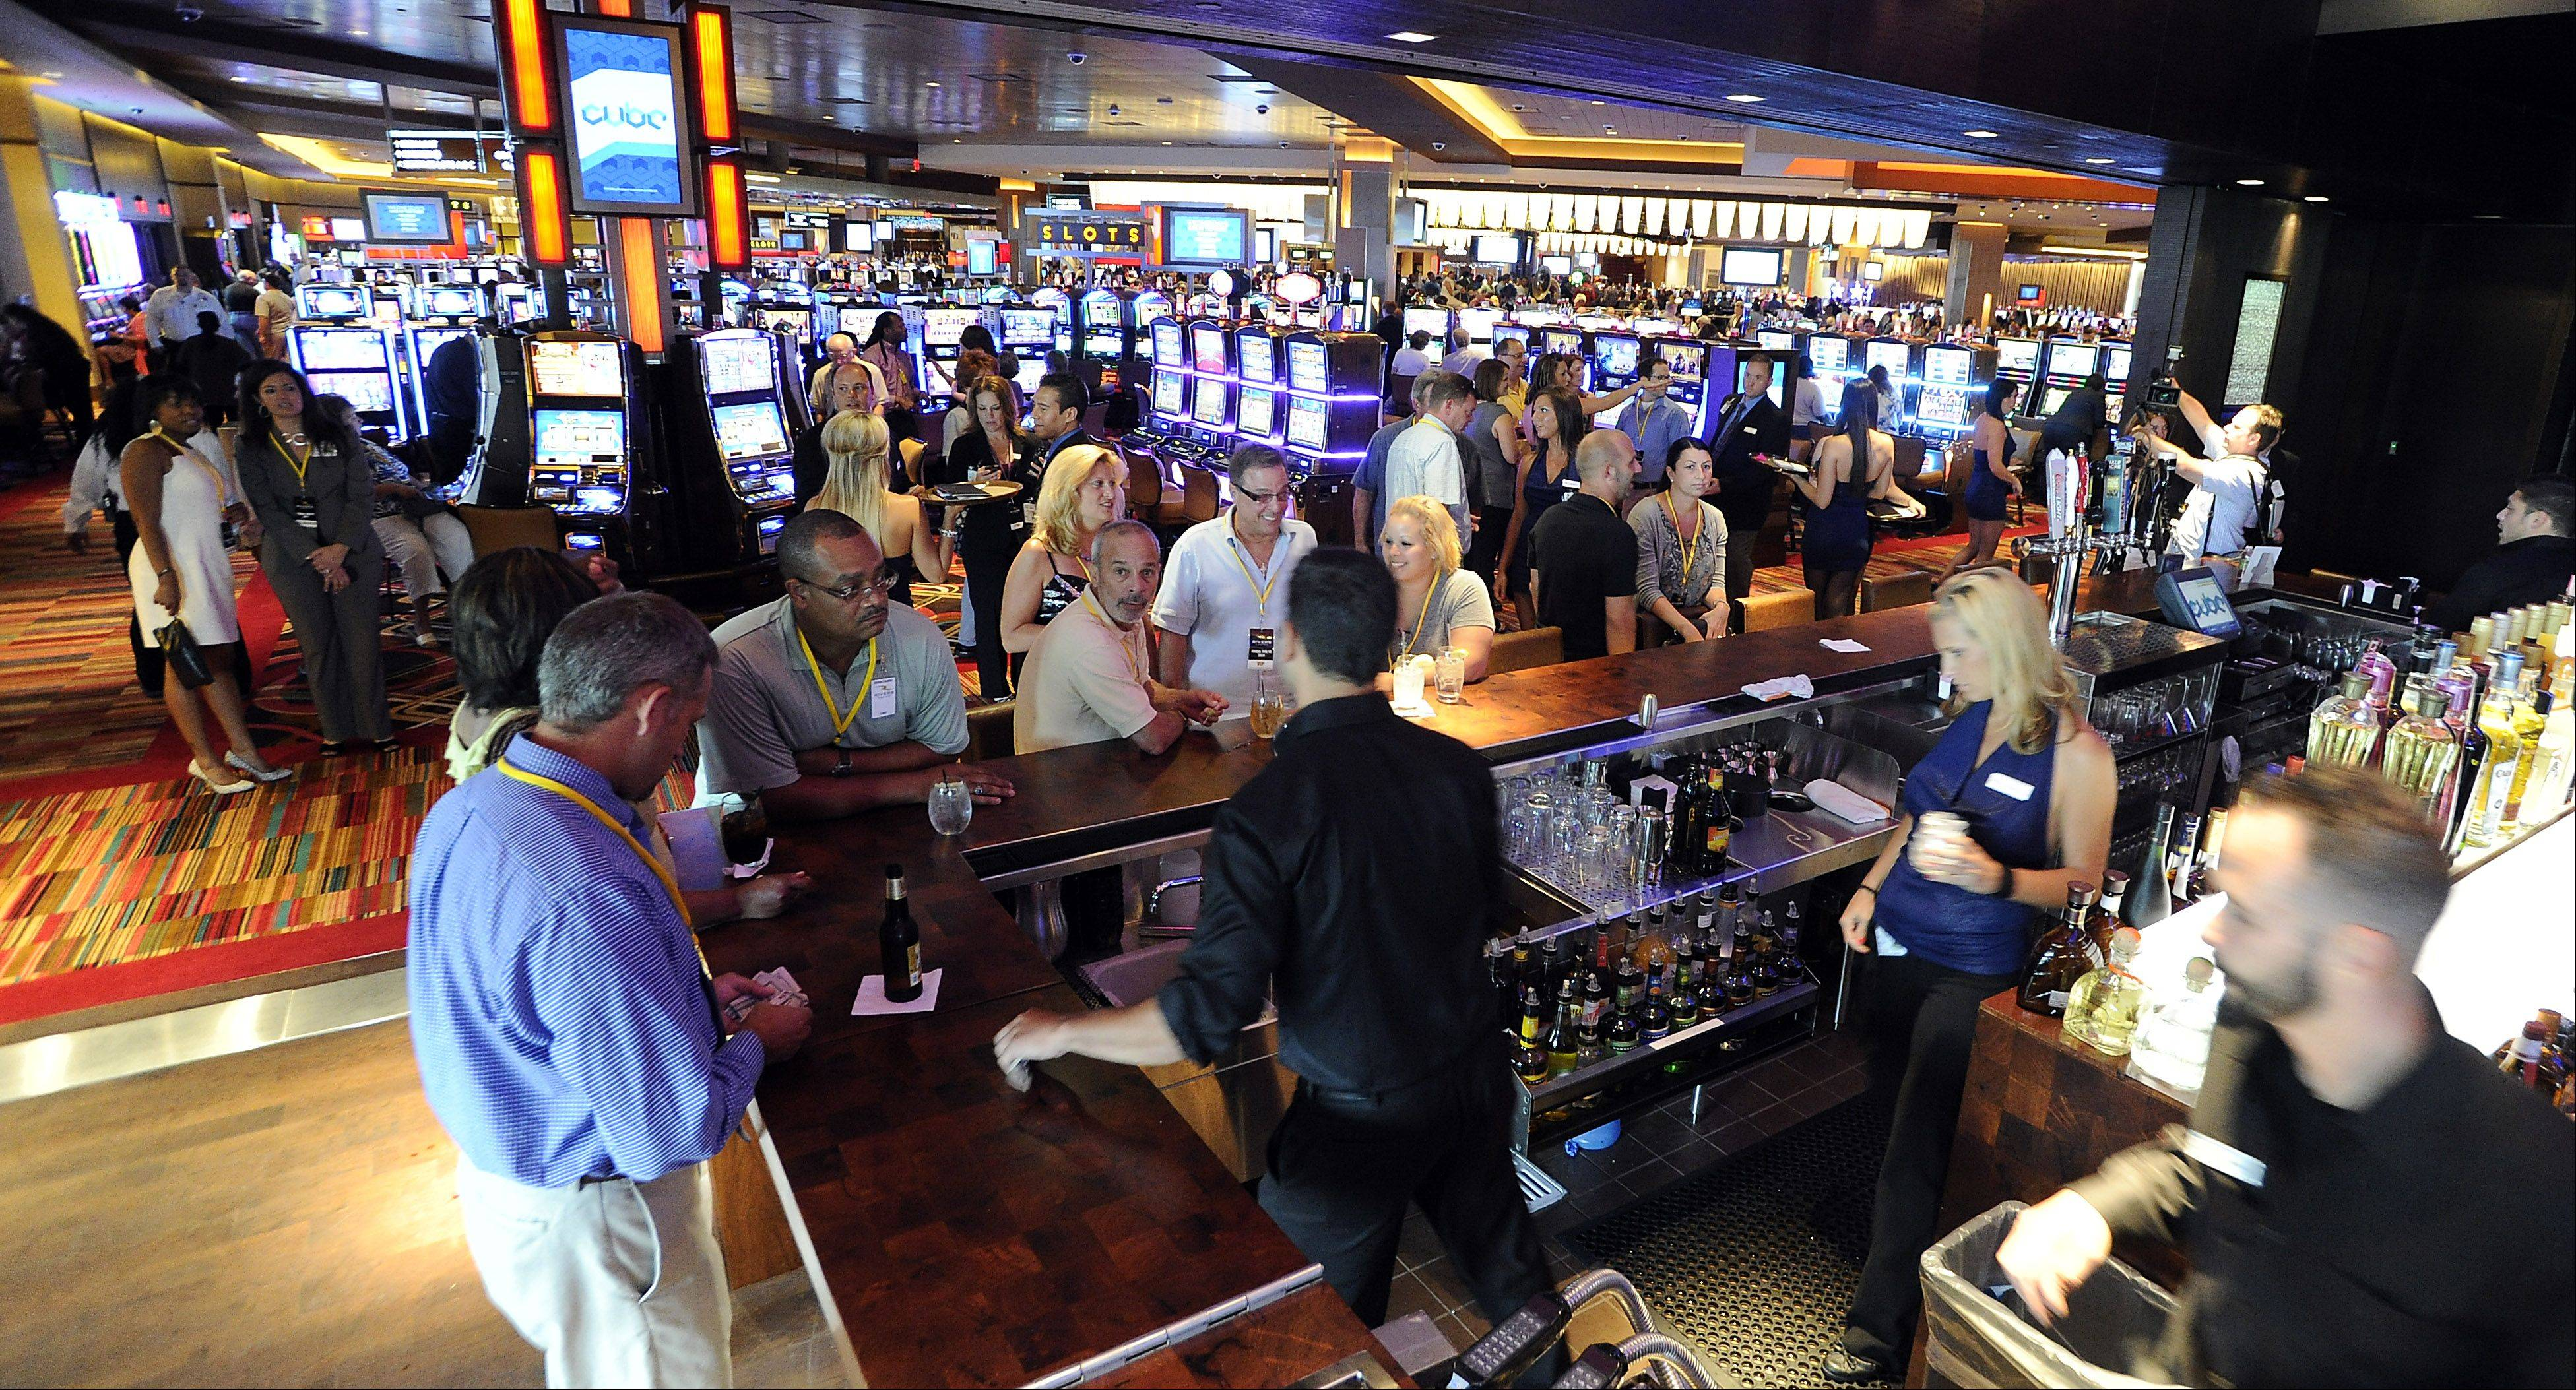 According to the Illinois Gaming Board, Rivers Casino in Des Plaines collected $416 million from gamblers in 2012. more than any other casino in Illinois.